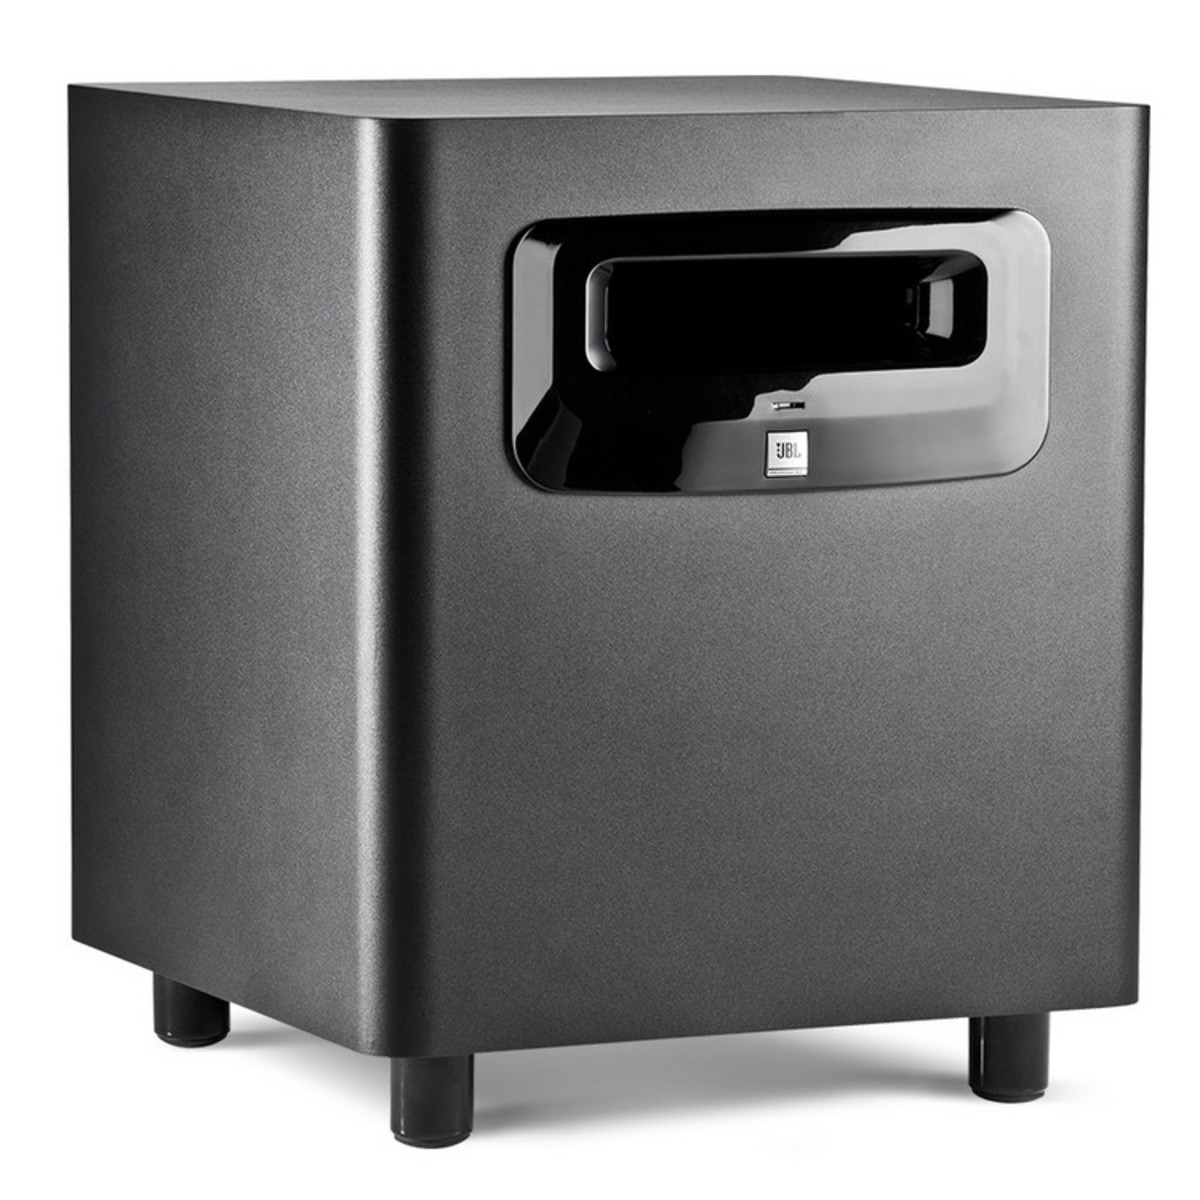 Click to view product details and reviews for Jbl Lsr310s 10 Inch Powered Studio Subwoofer.